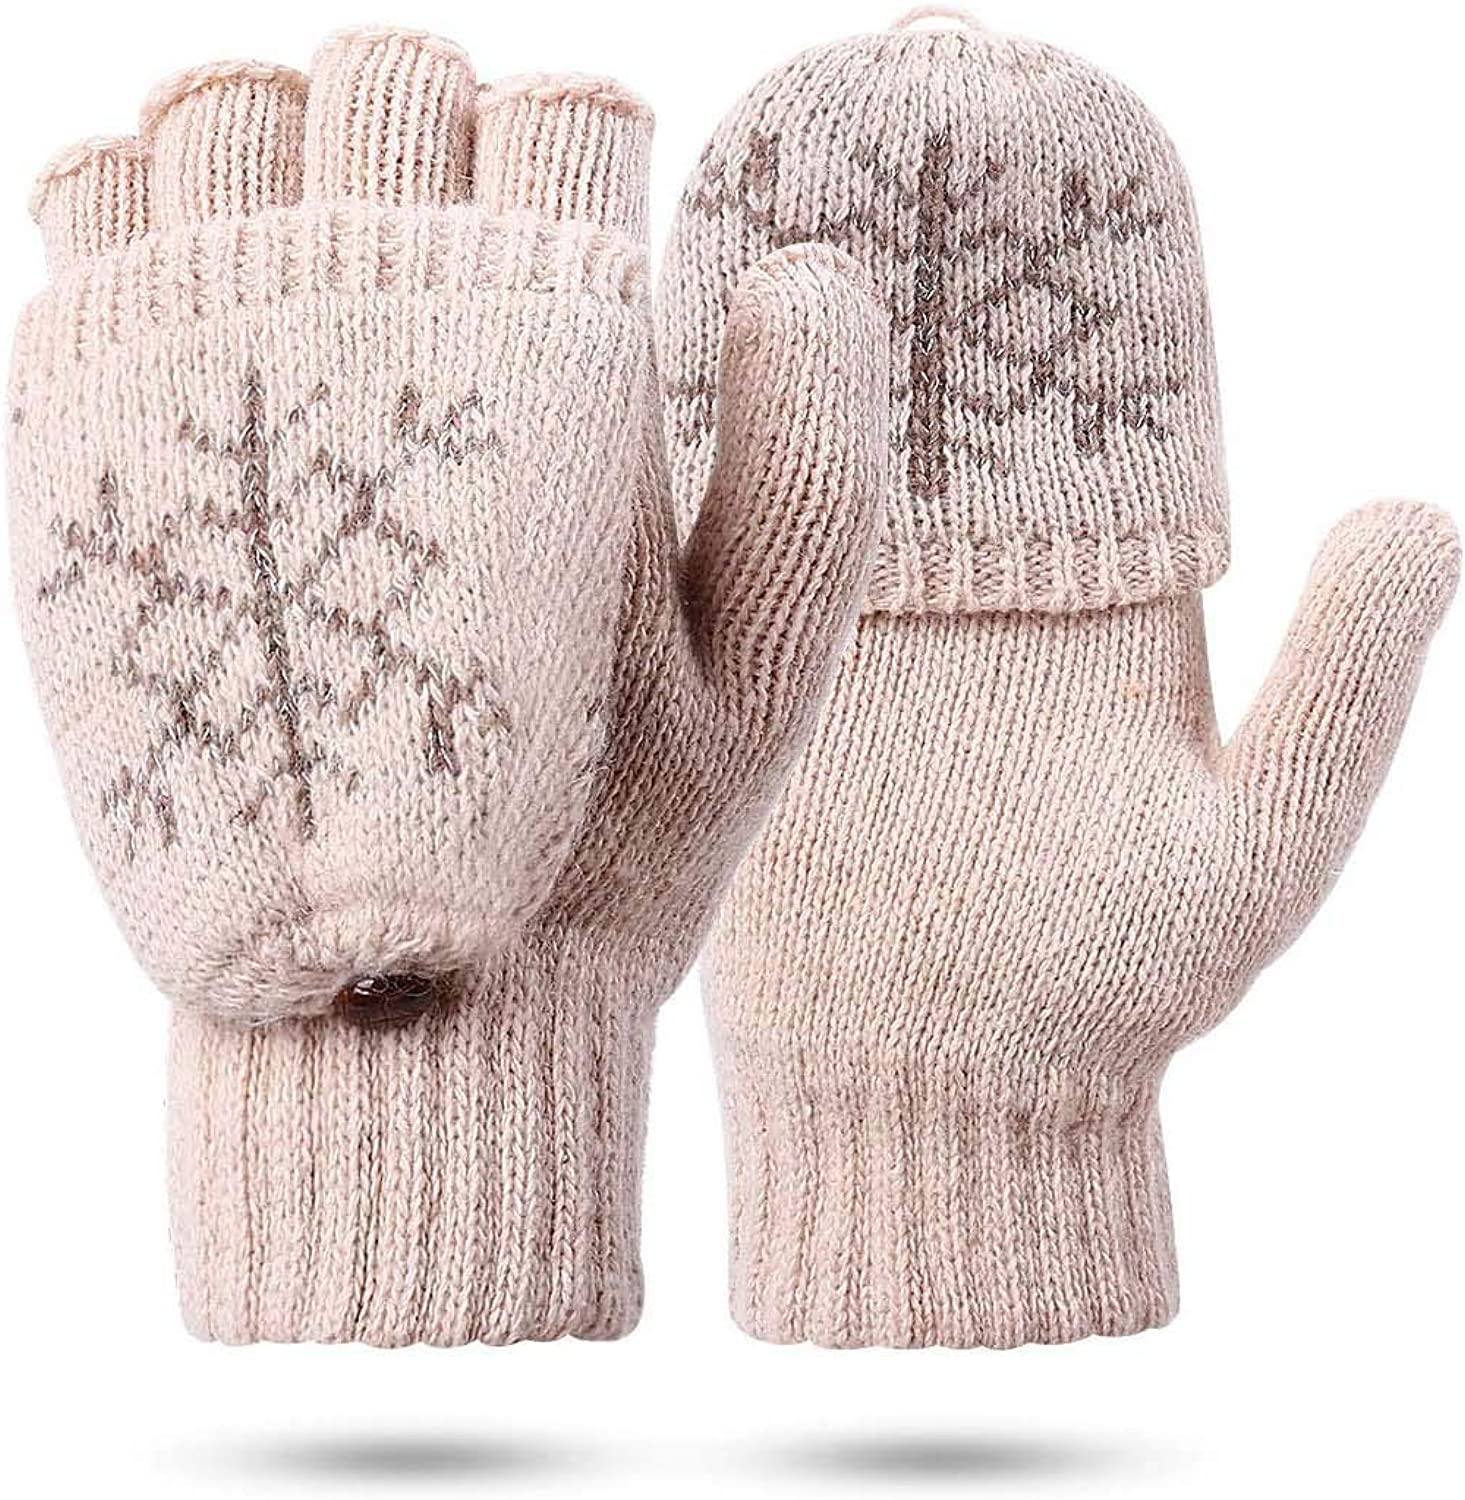 Women's Gloves Fingerless Mittens - Ladies Gloves Winter Warm Knit Fingerless Gloves Wool Mittens Flap Cover Texting Gloves